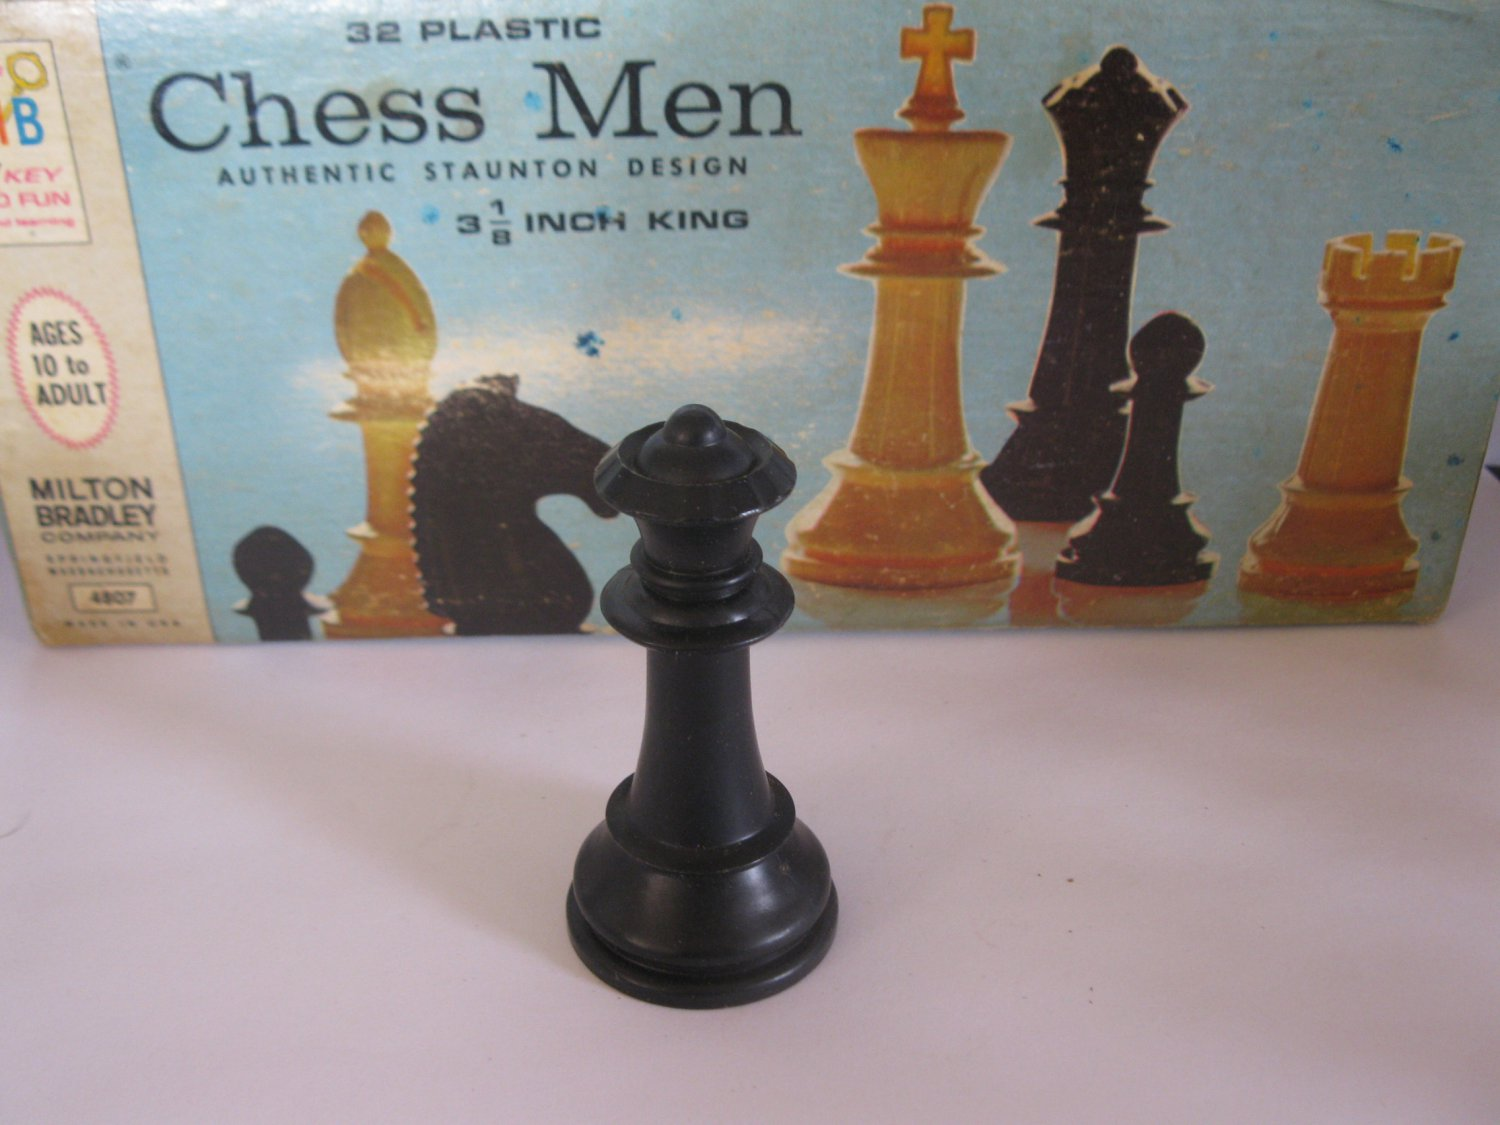 1969 Chess Men Board Game Piece: Authentic Stauton Design - Black Queen